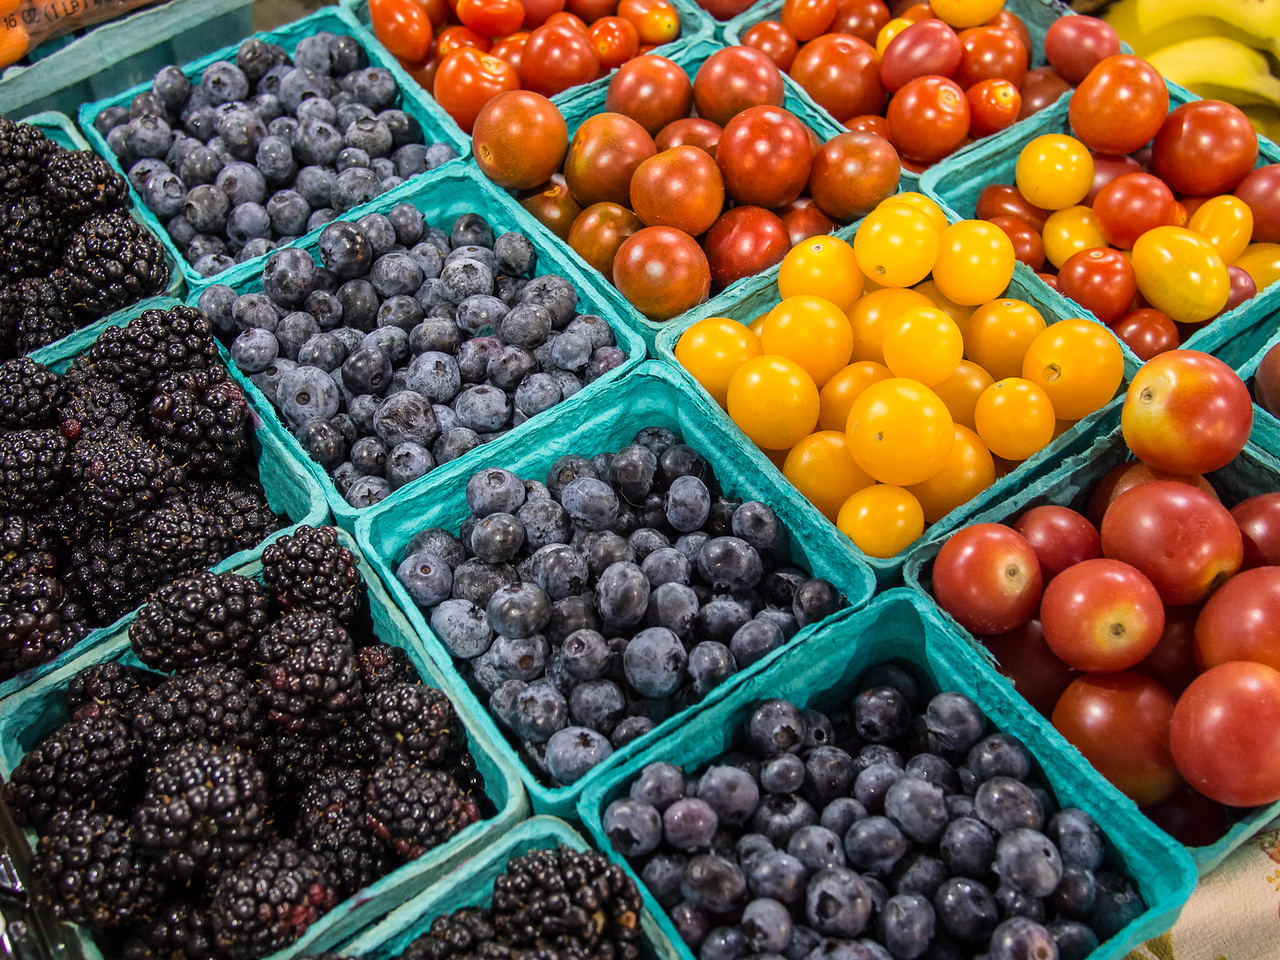 Containers of Fresh Fruit & Vegetables at a Farmer's Market